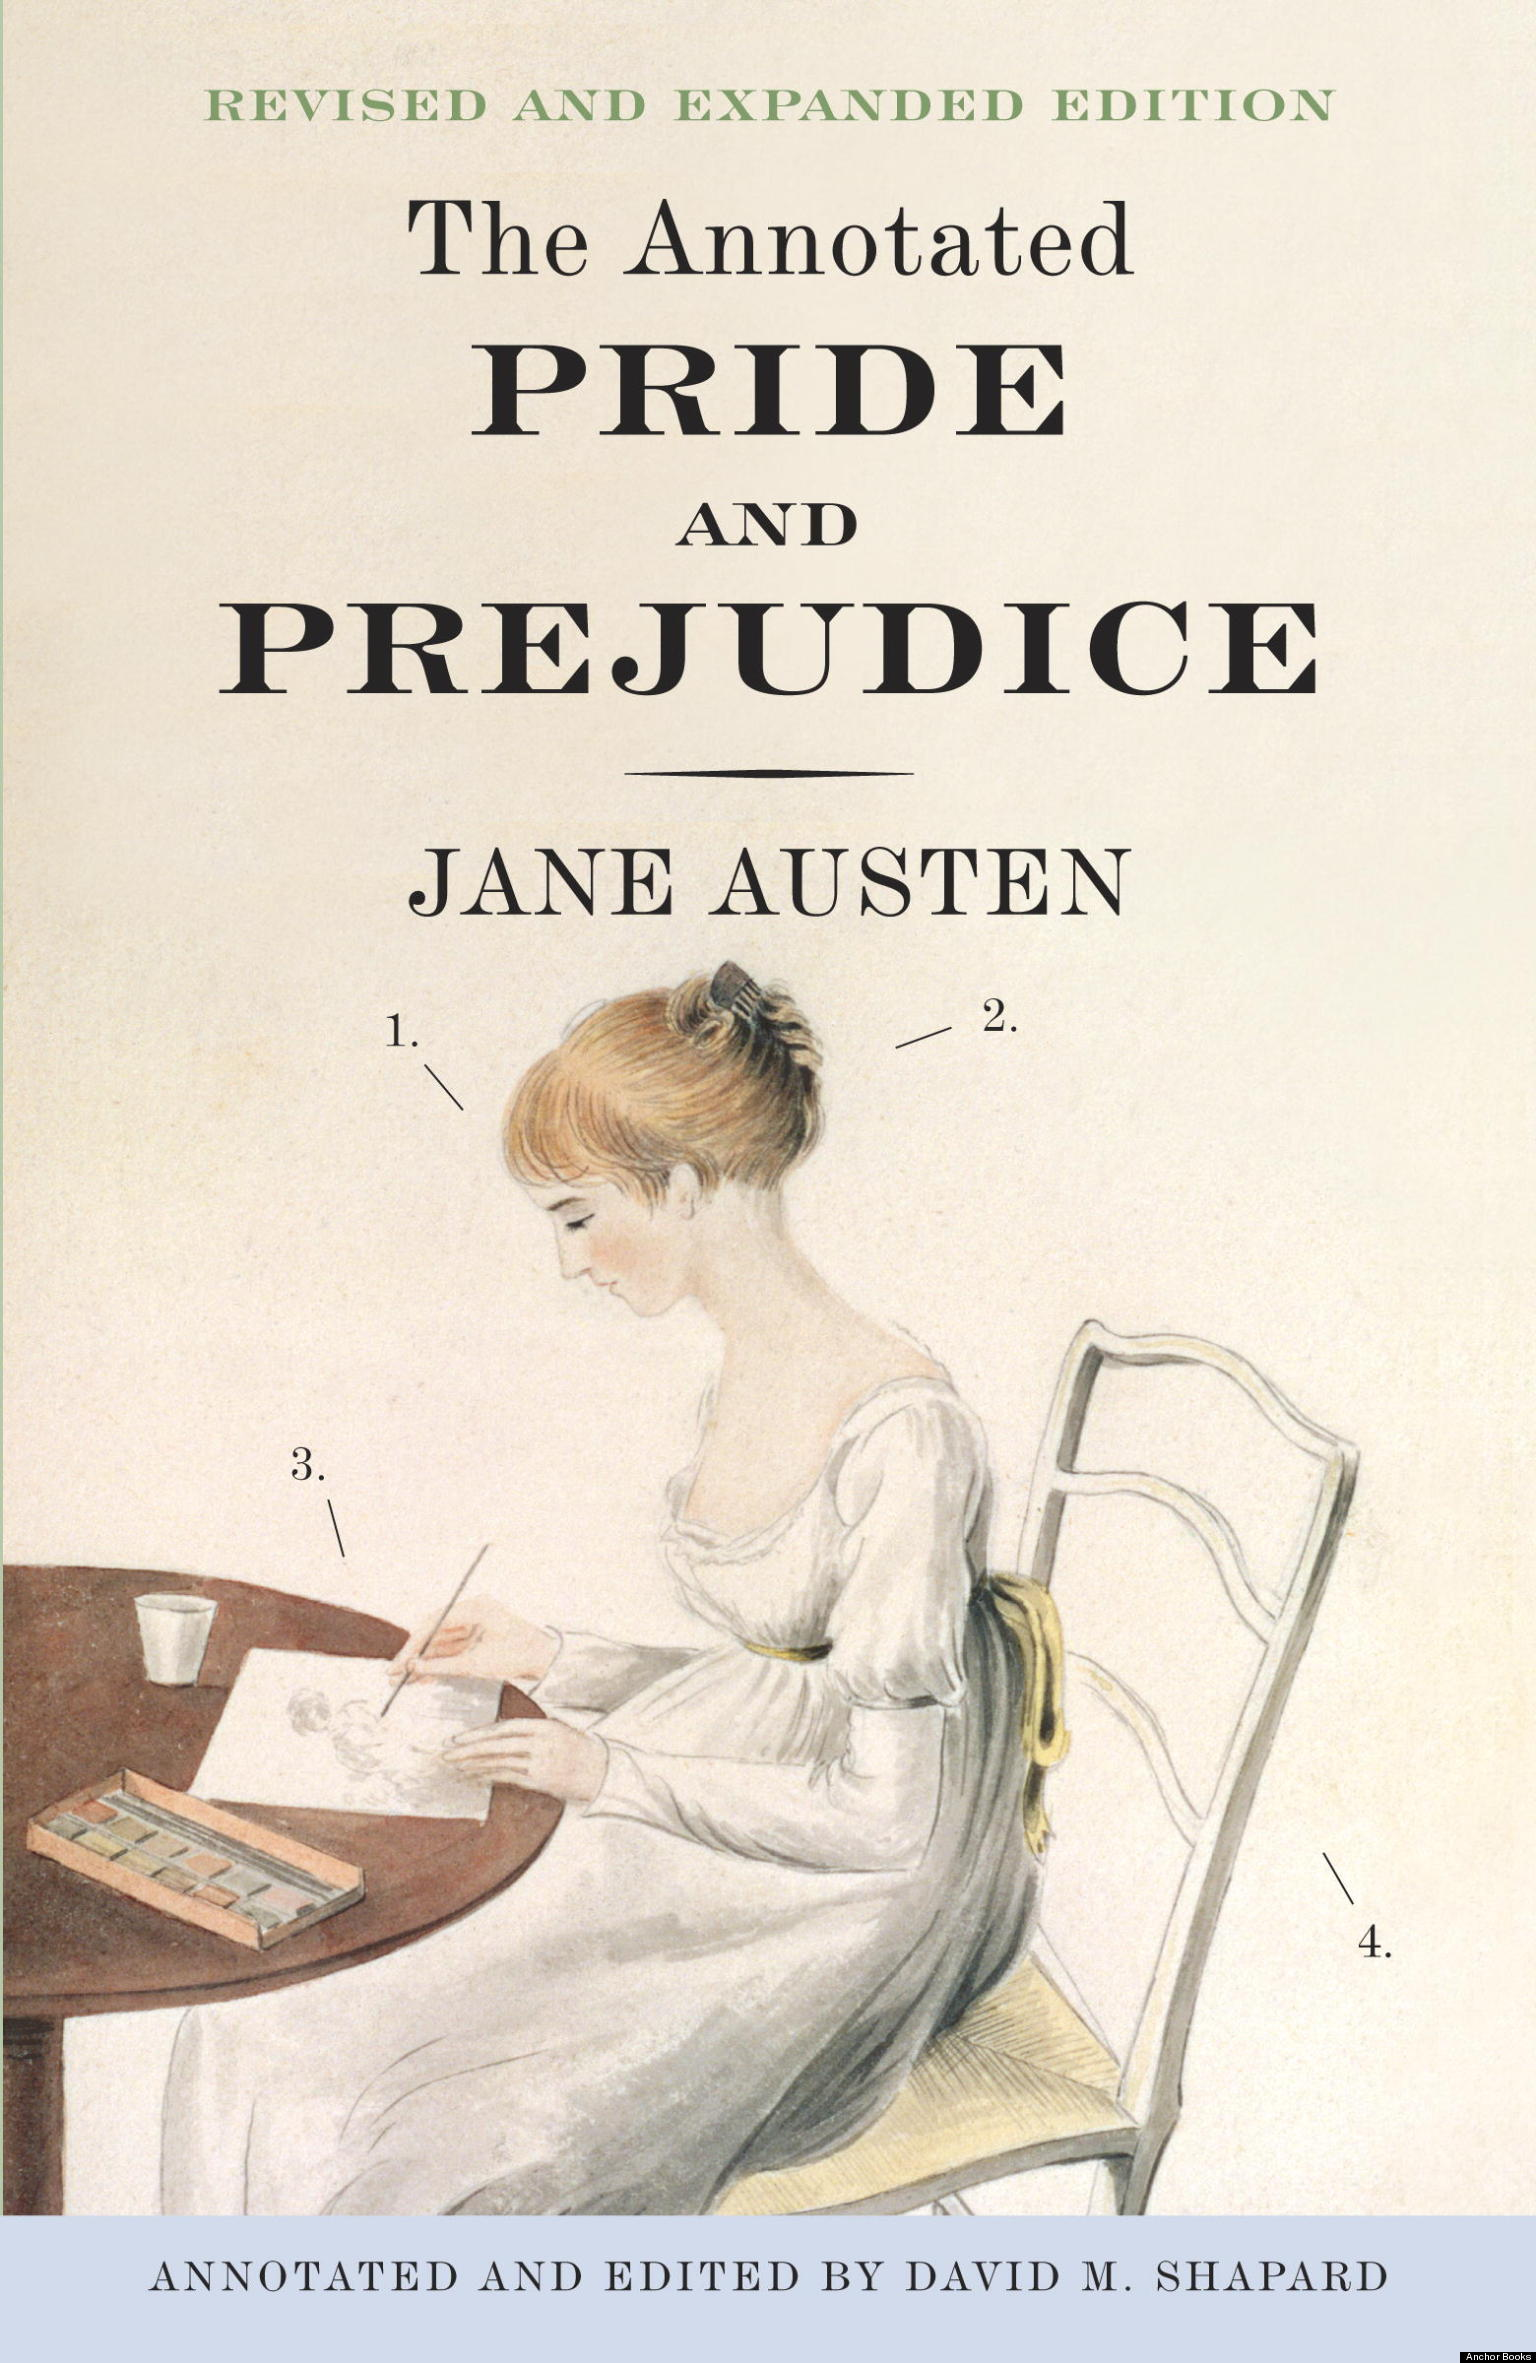 facts you probably didn t know about pride and prejudice 12 facts you probably didn t know about pride and prejudice the huffington post